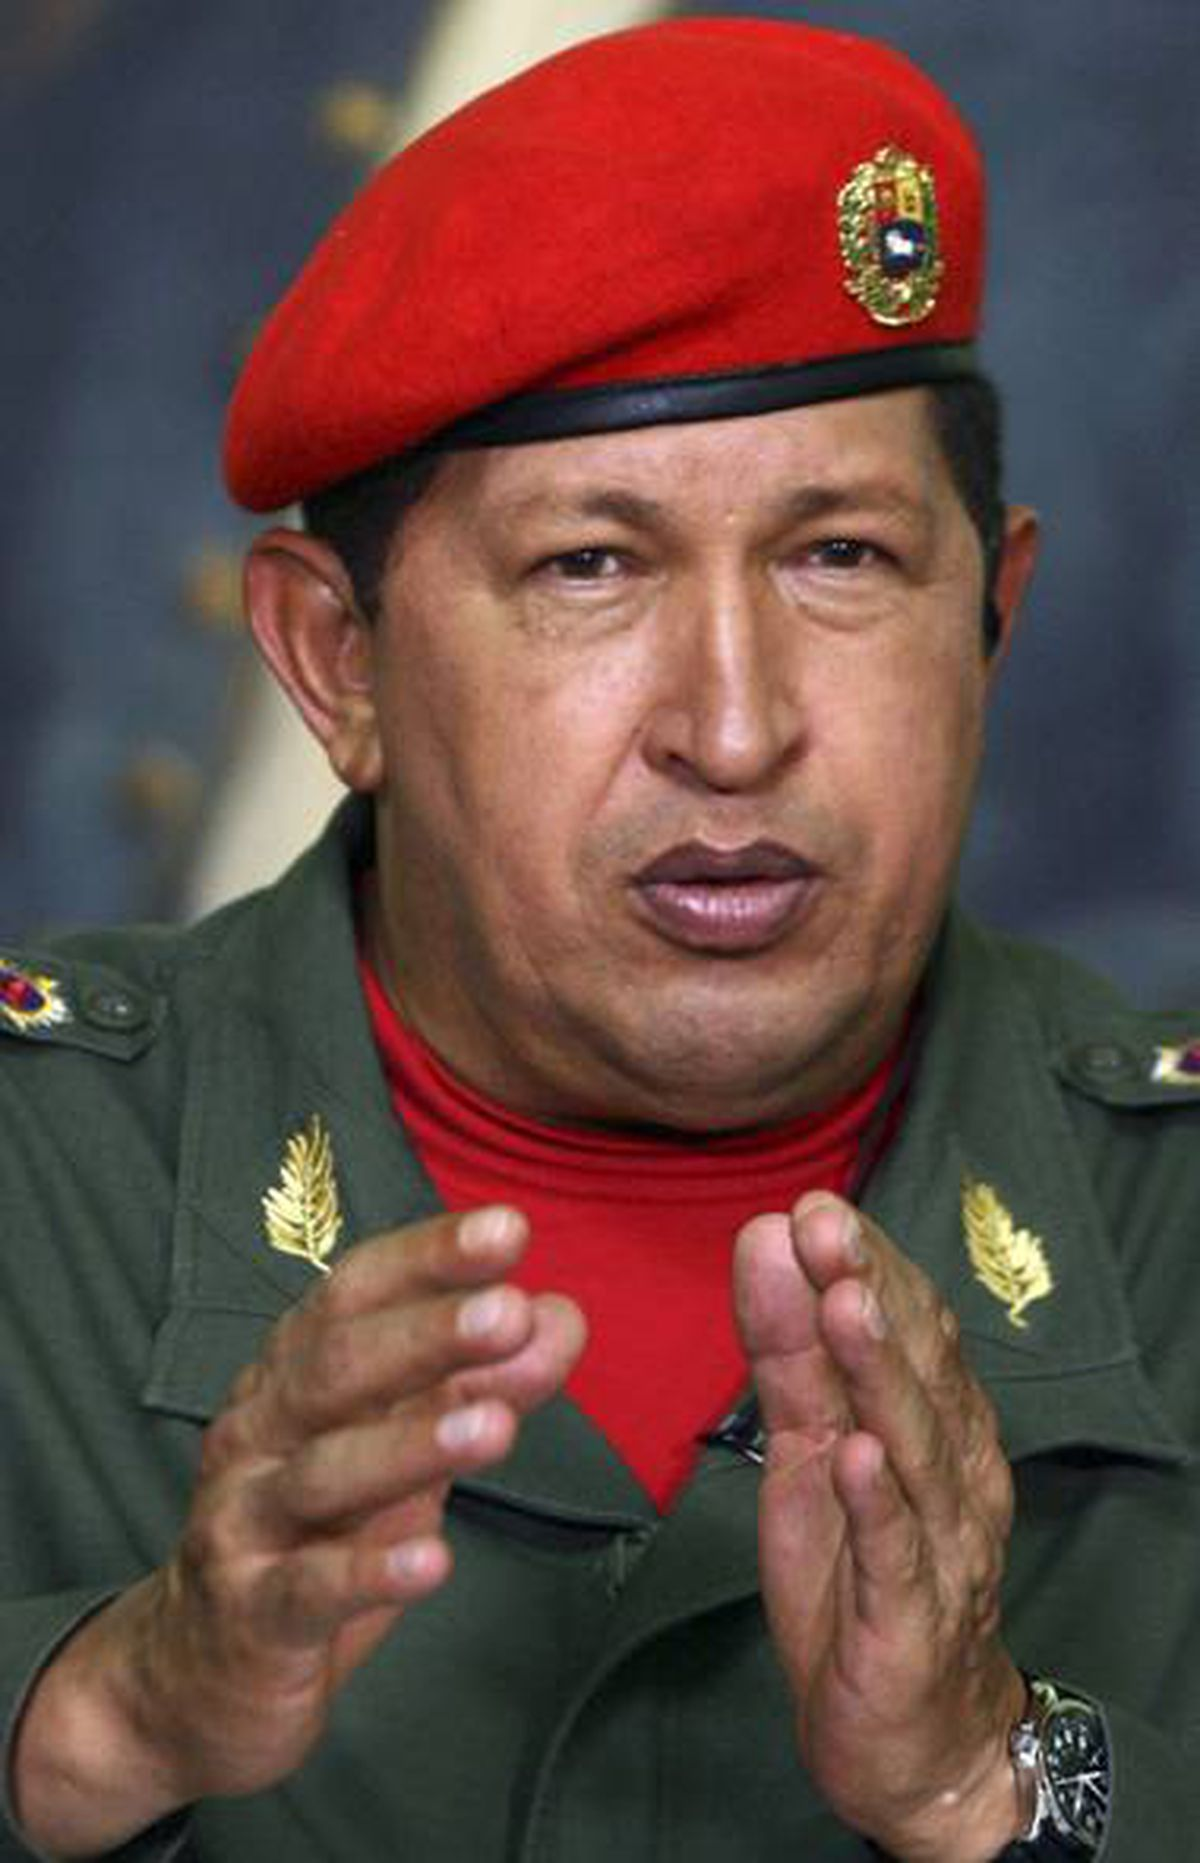 """VENEZUELA/CUBA: Cuban intelligence services directly advised Venezuelan President Hugo Chavez in what a U.S. diplomat called the """"Axis of Mischief,"""" according to a State Department cable. """"Cuban intelligence officers have direct access to Chavez and frequently provide him with intelligence reporting unvetted by Venezuelan officers,"""" said the 2006 note released by WikiLeaks. Other cables revealed U.S. anxiety at Mr. Chavez's """"cosiness"""" with Iran and concerns of Venezuelan Jews over what they saw as government prejudice against them."""